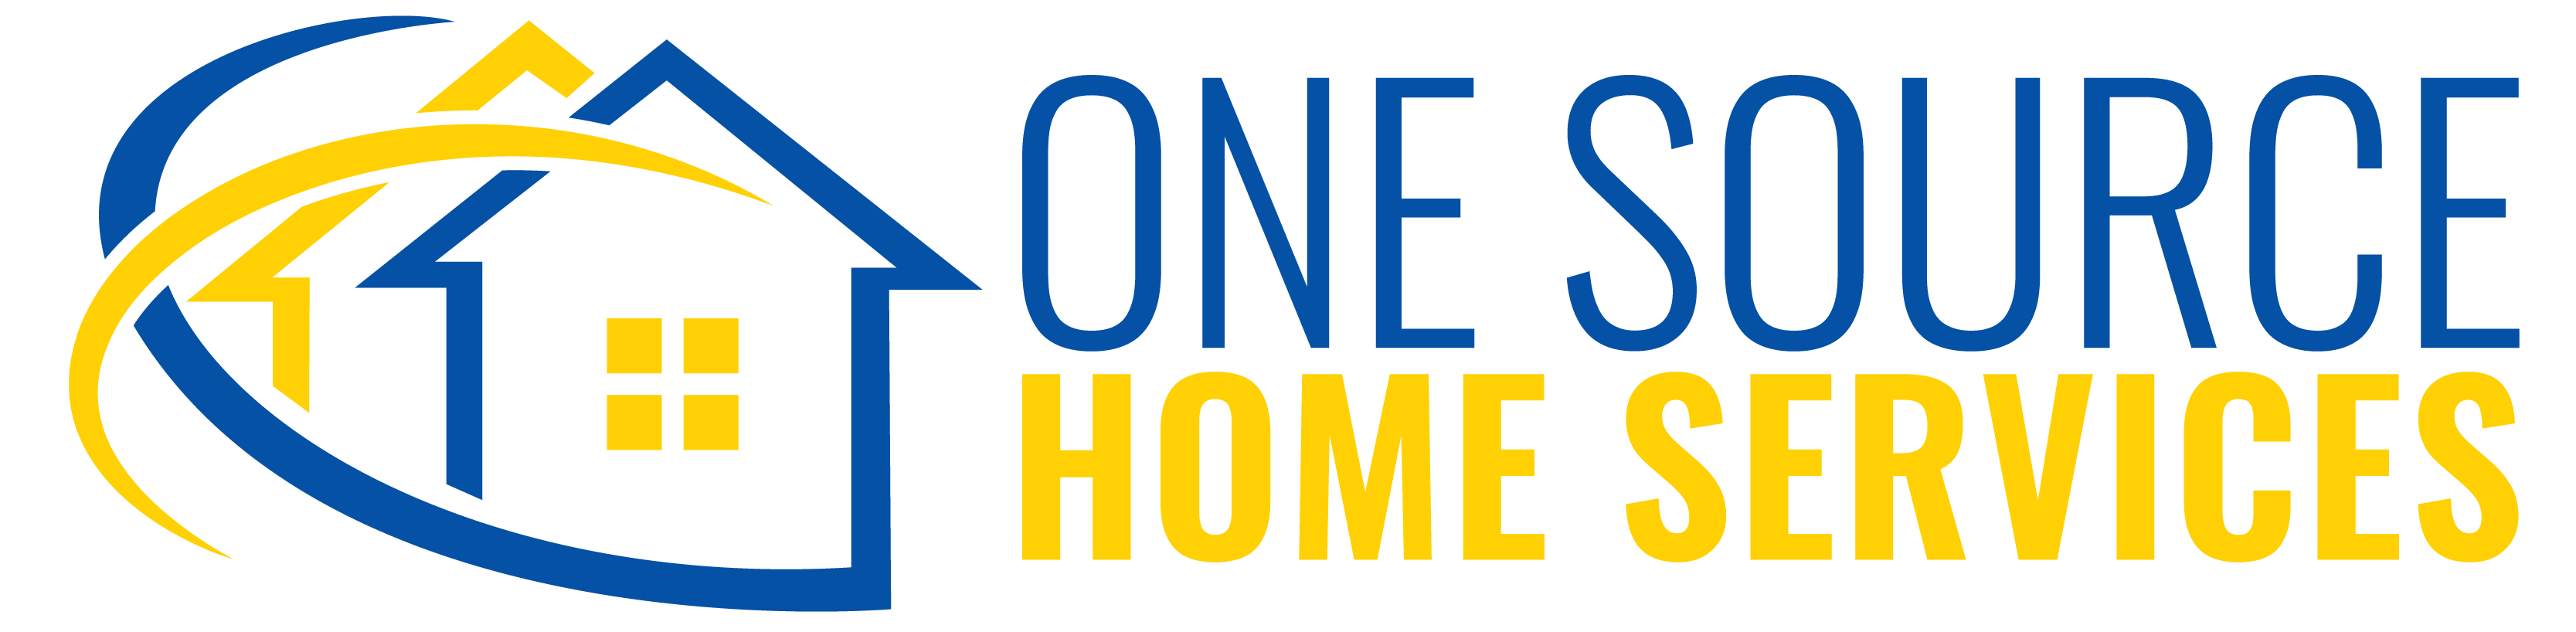 One Source Home Services, a Top-Rated HVAC Contractor in Lively Offers High-Quality Commercial and Residential Services